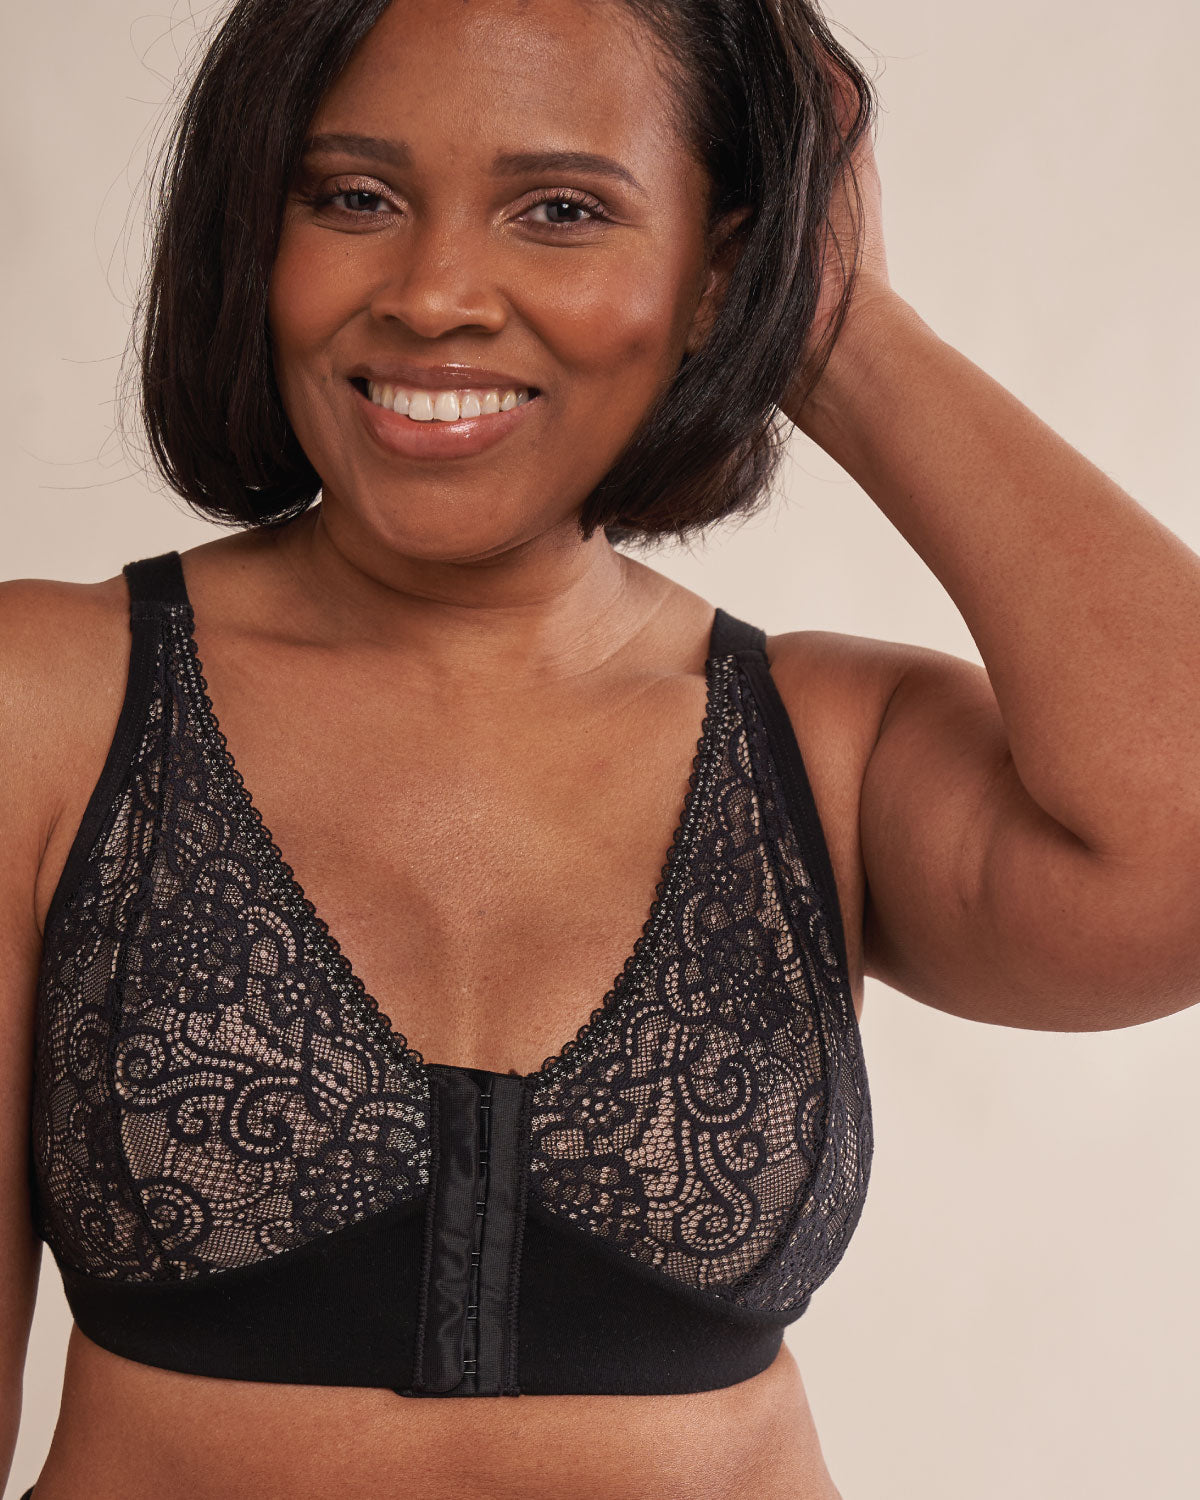 Black, pocketed front closure lace bra made with soft modal, dual adjustable back straps and underwire free cups on model with implants.